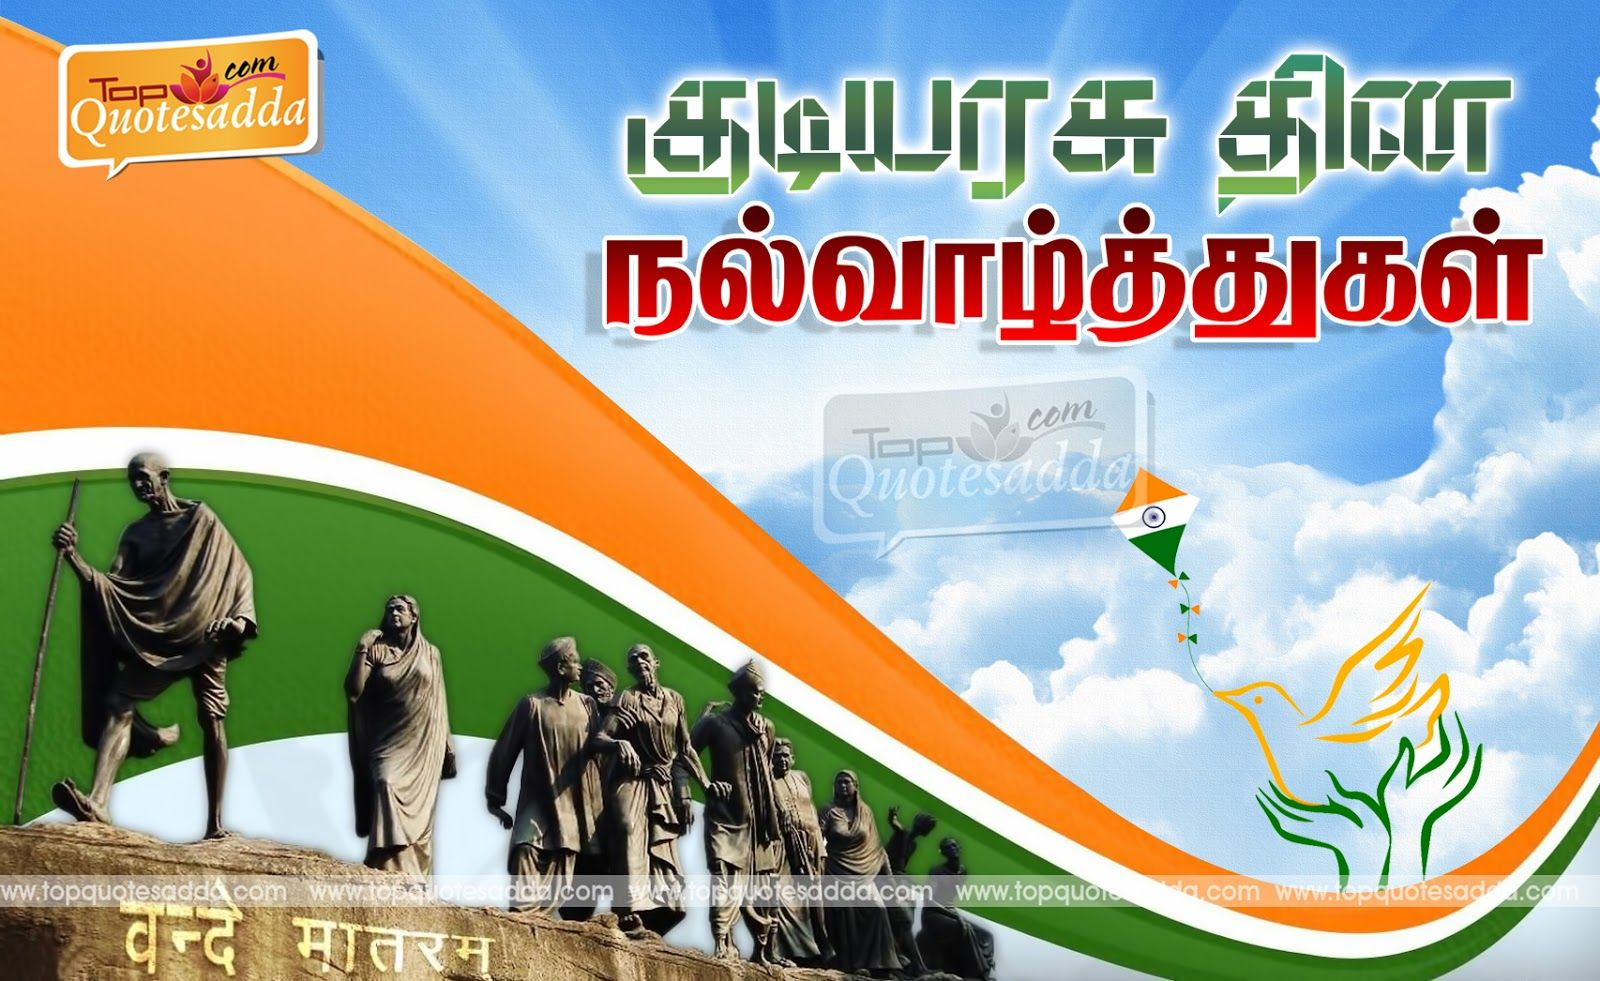 Happy Republic Day Tamil Quotes And Sayings Republic Day Tamil